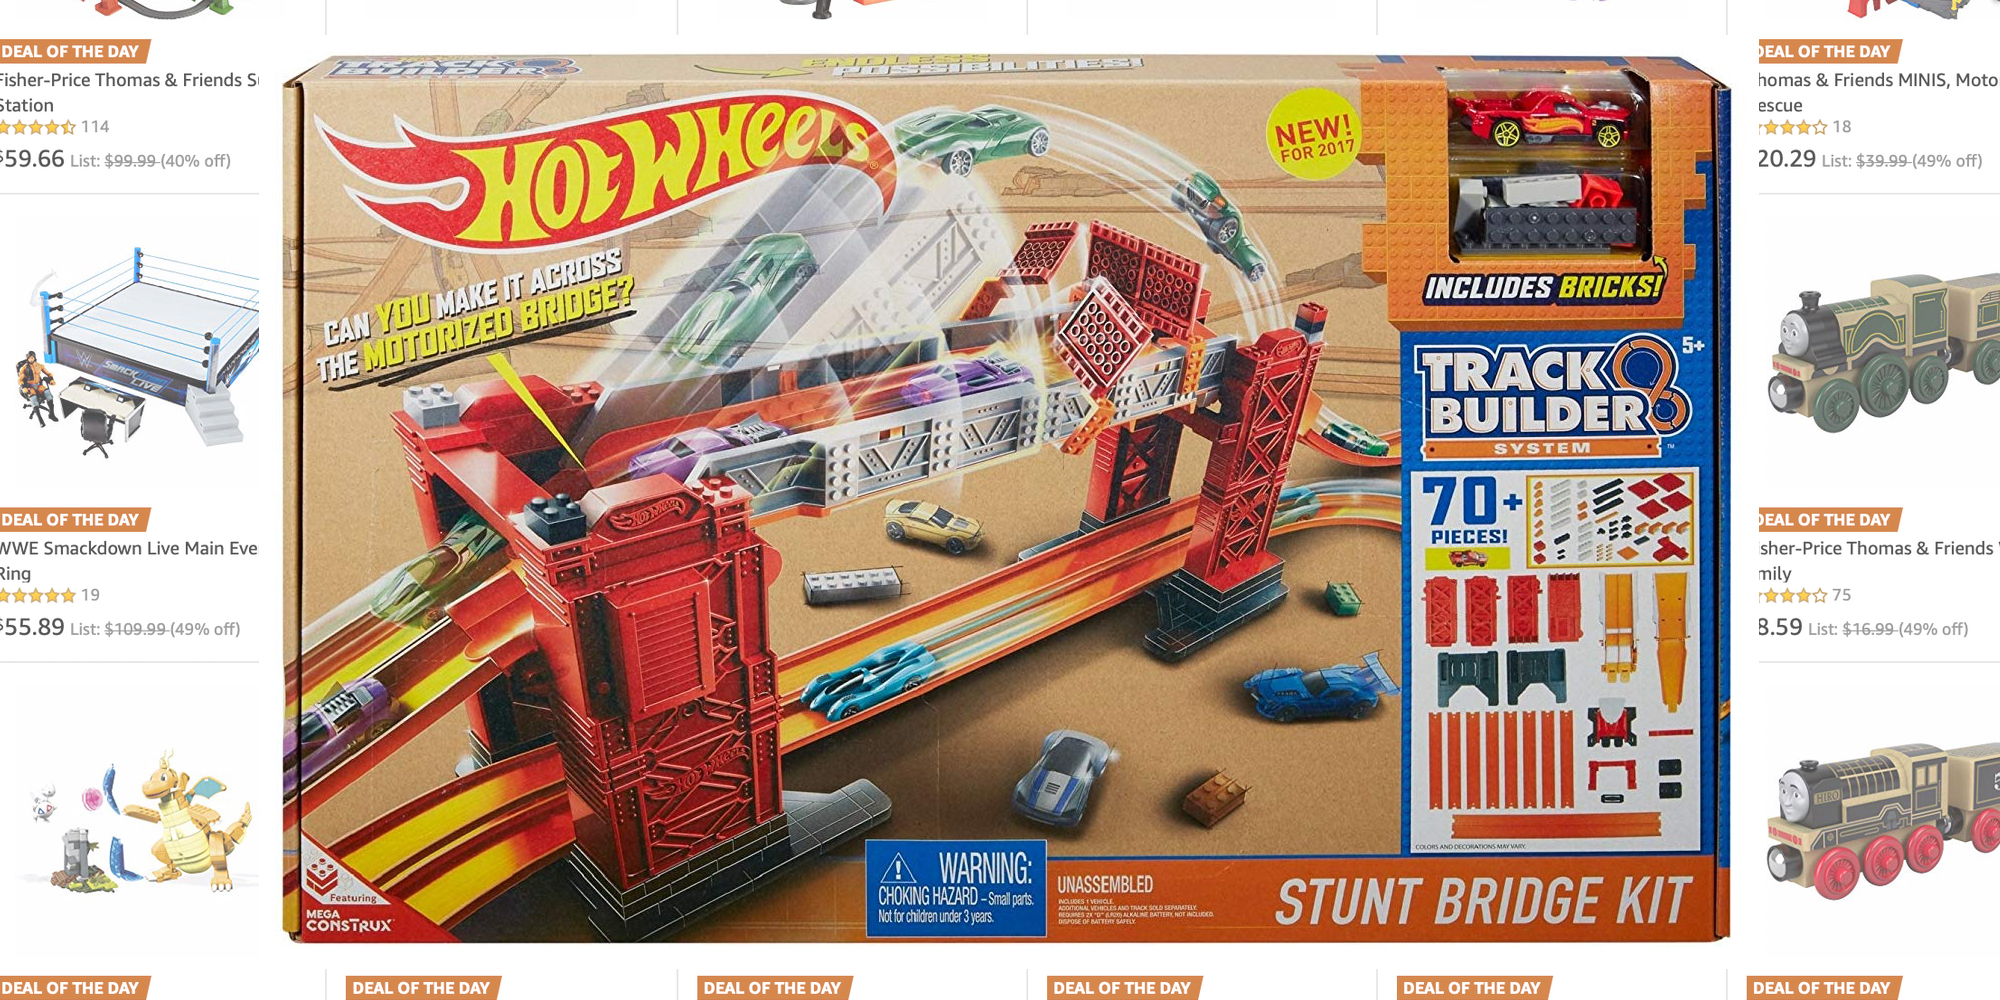 Amazon's Last-Minute Deals take 40% off Hot Wheels, Thomas & Friends, and more from $4